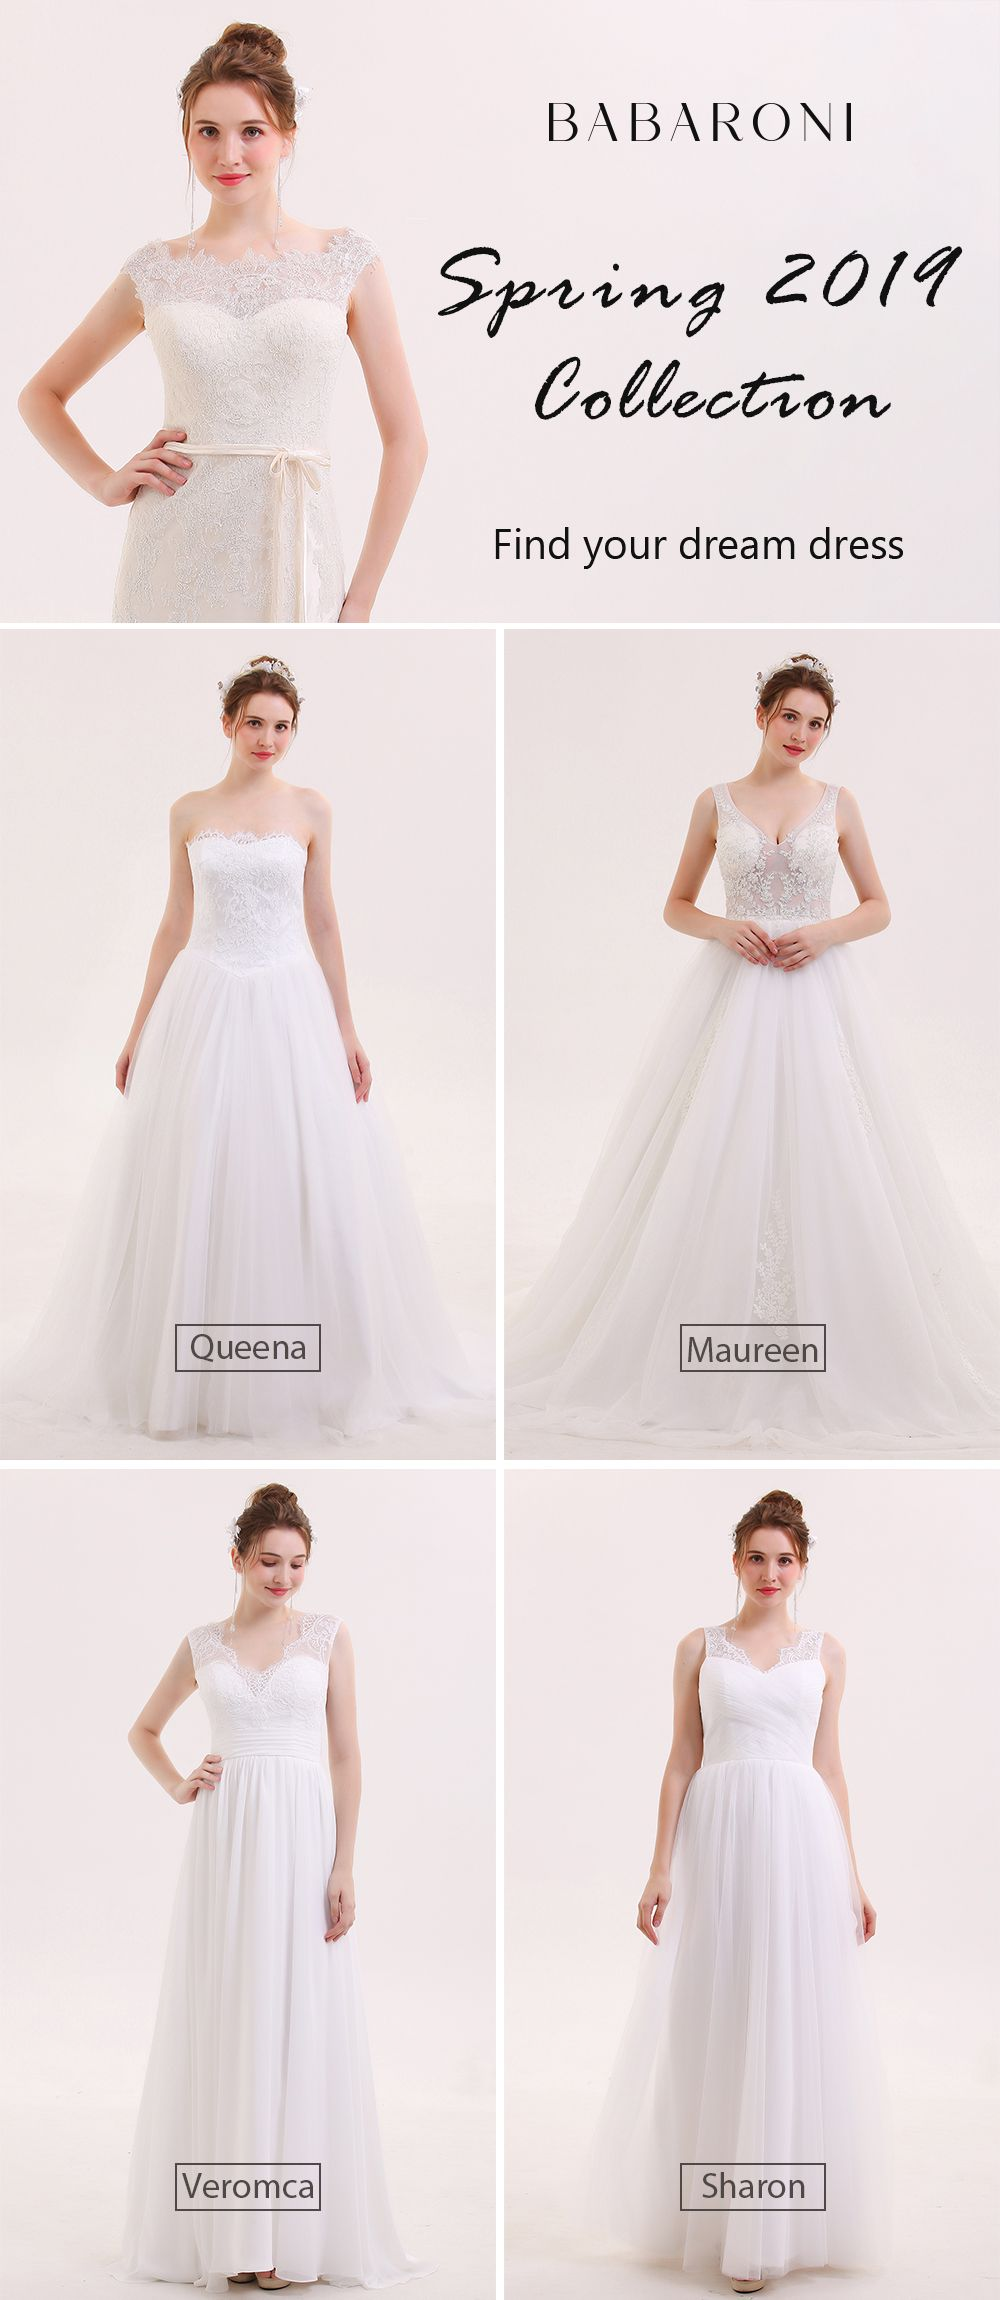 Wedding Dresses | Wedding dresses, Dream wedding dresses